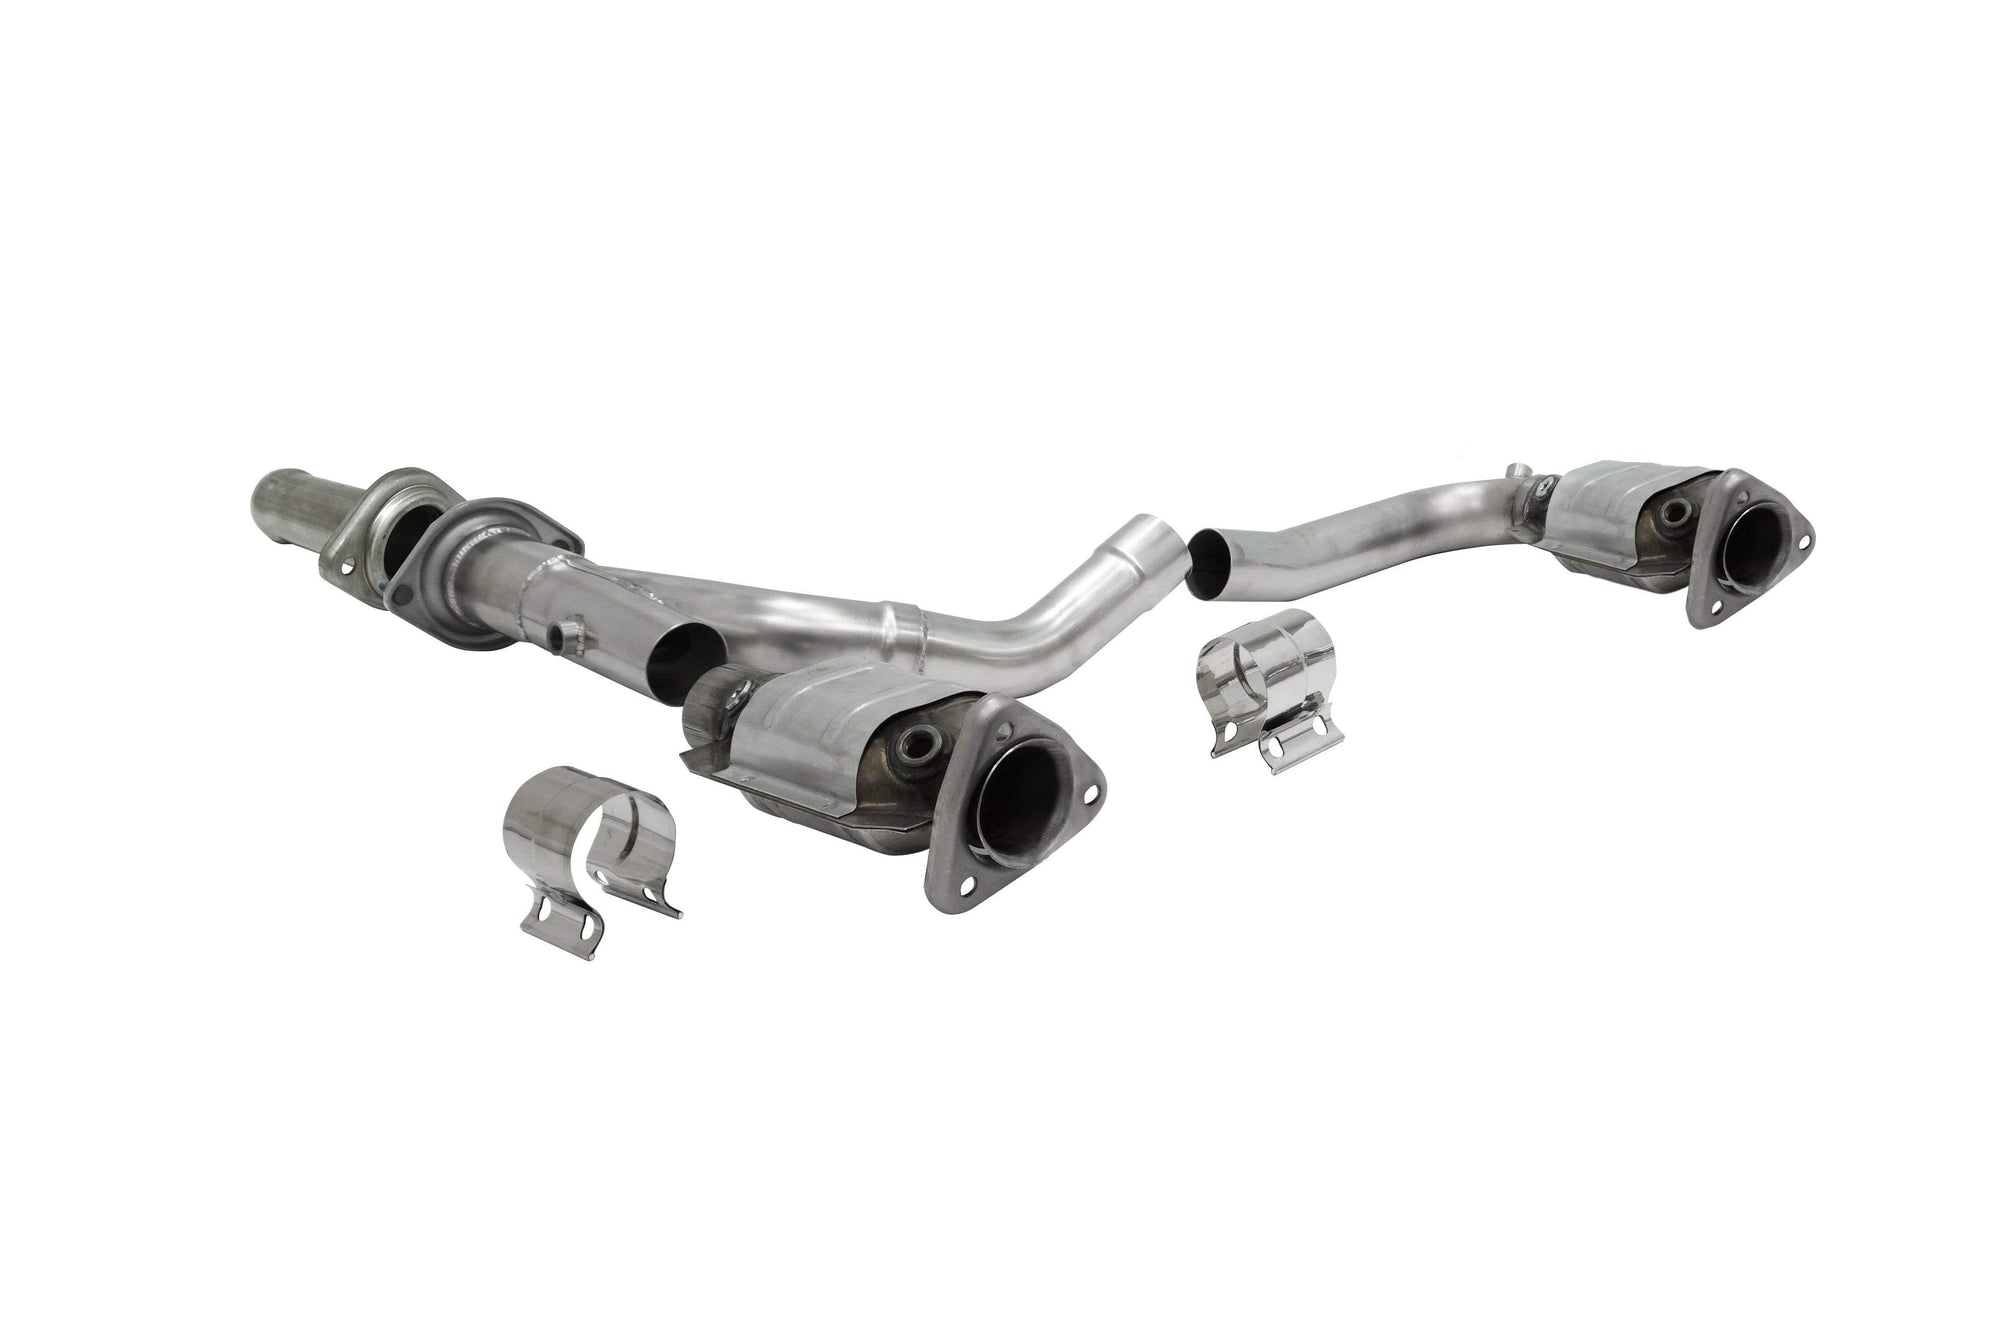 "CORSA PERFORMANCE Headers 2009-2013 Chevrolet Silverado, GMC Sierra 4.8L, 5.3L, 6.0L V8 Long Tube Headers with Catted Connection Pipes 1.75"" x 2.5""-  (16328)"